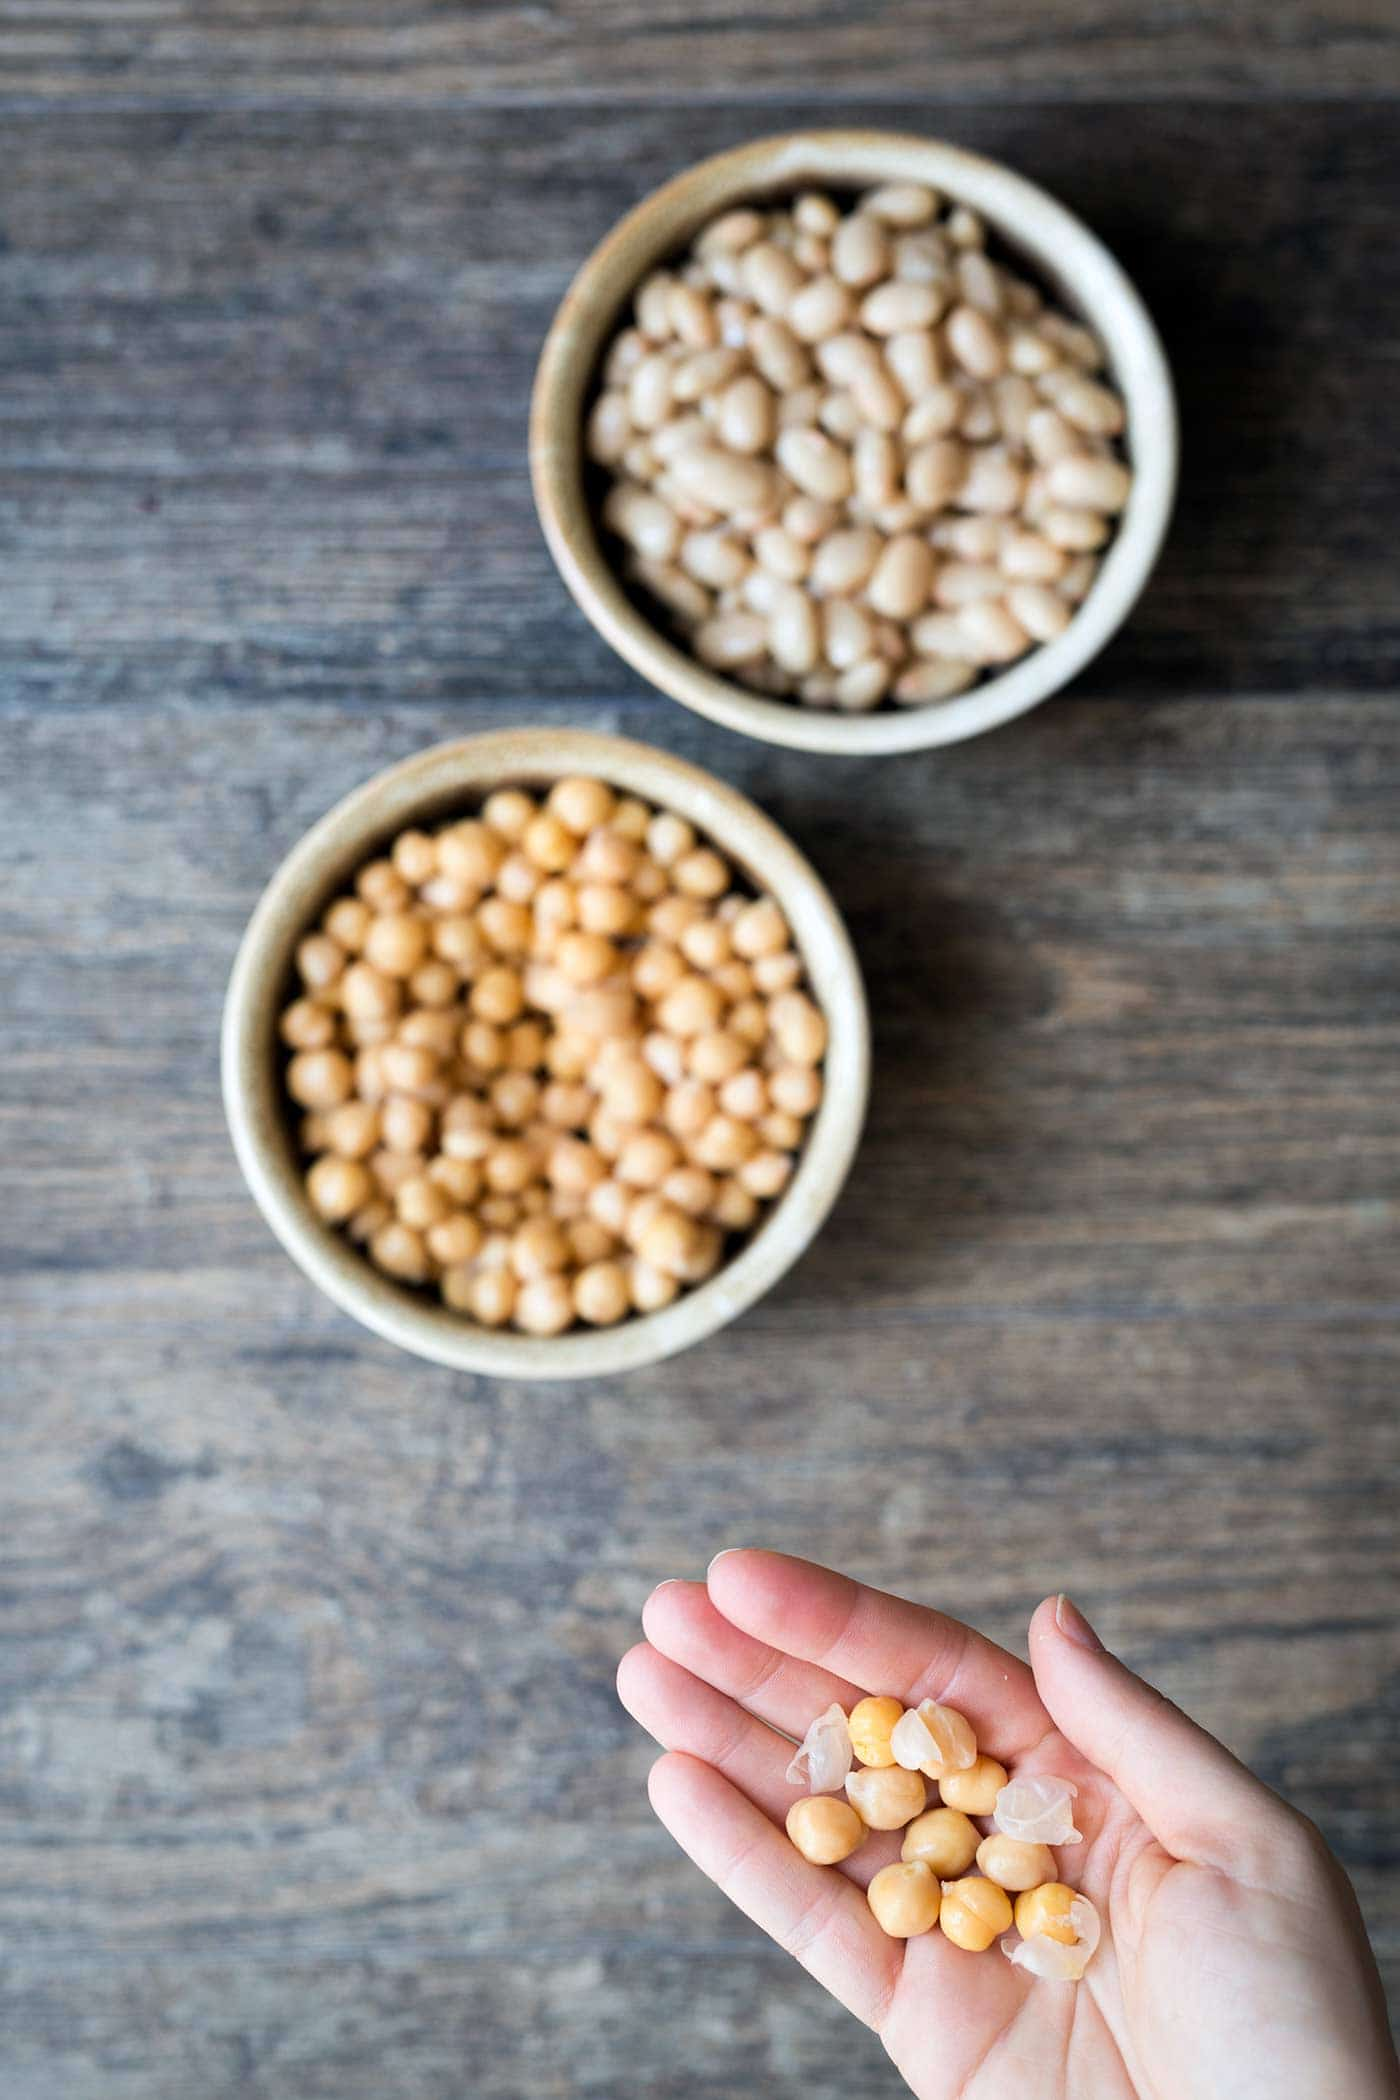 Chickpeas and white beans, with a close up of chickpea skins.